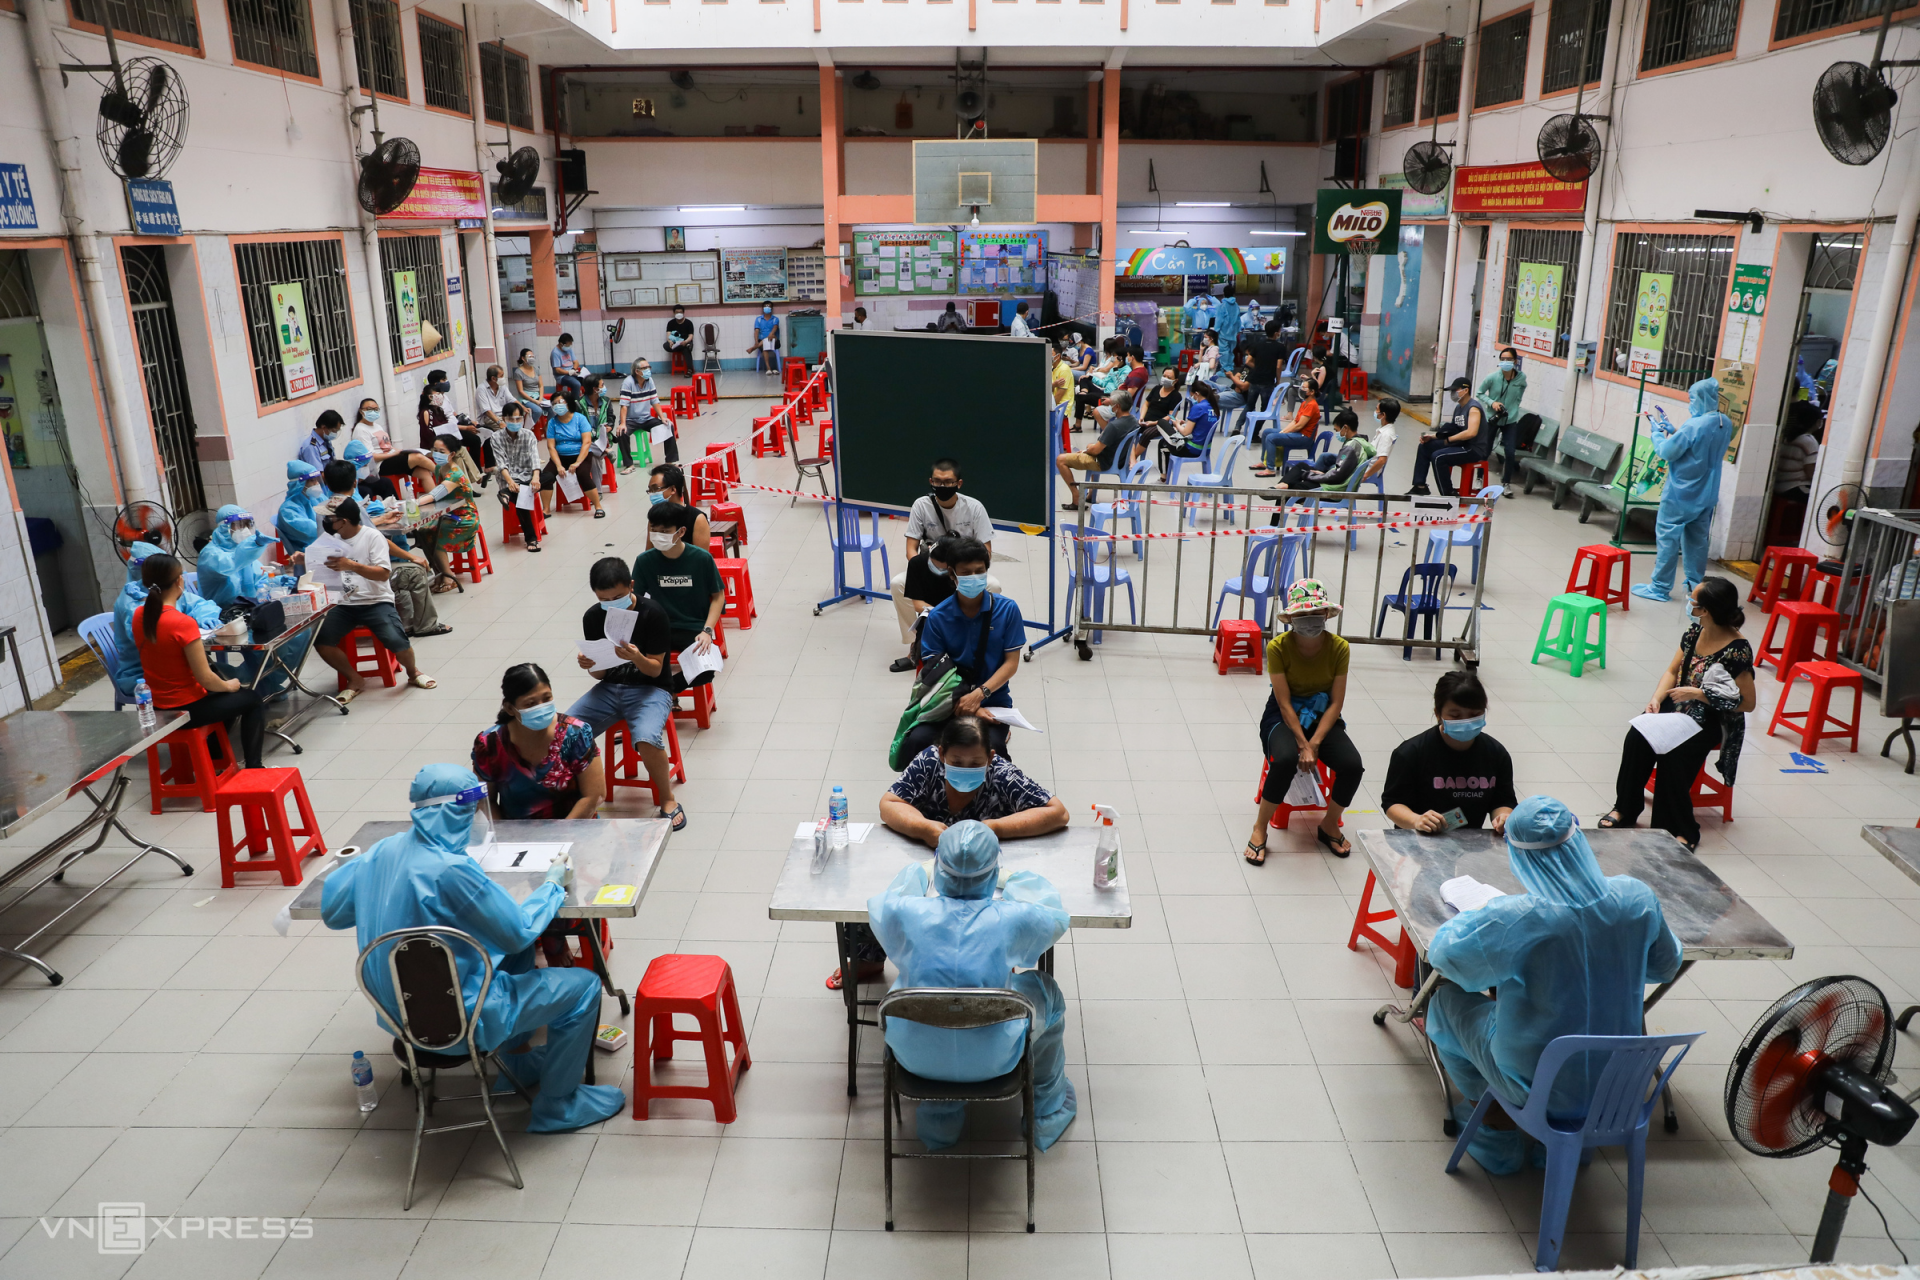 Vietnam News Today (August 4): Shippers in Ho Chi Minh City Receive Covid Vaccine Jab